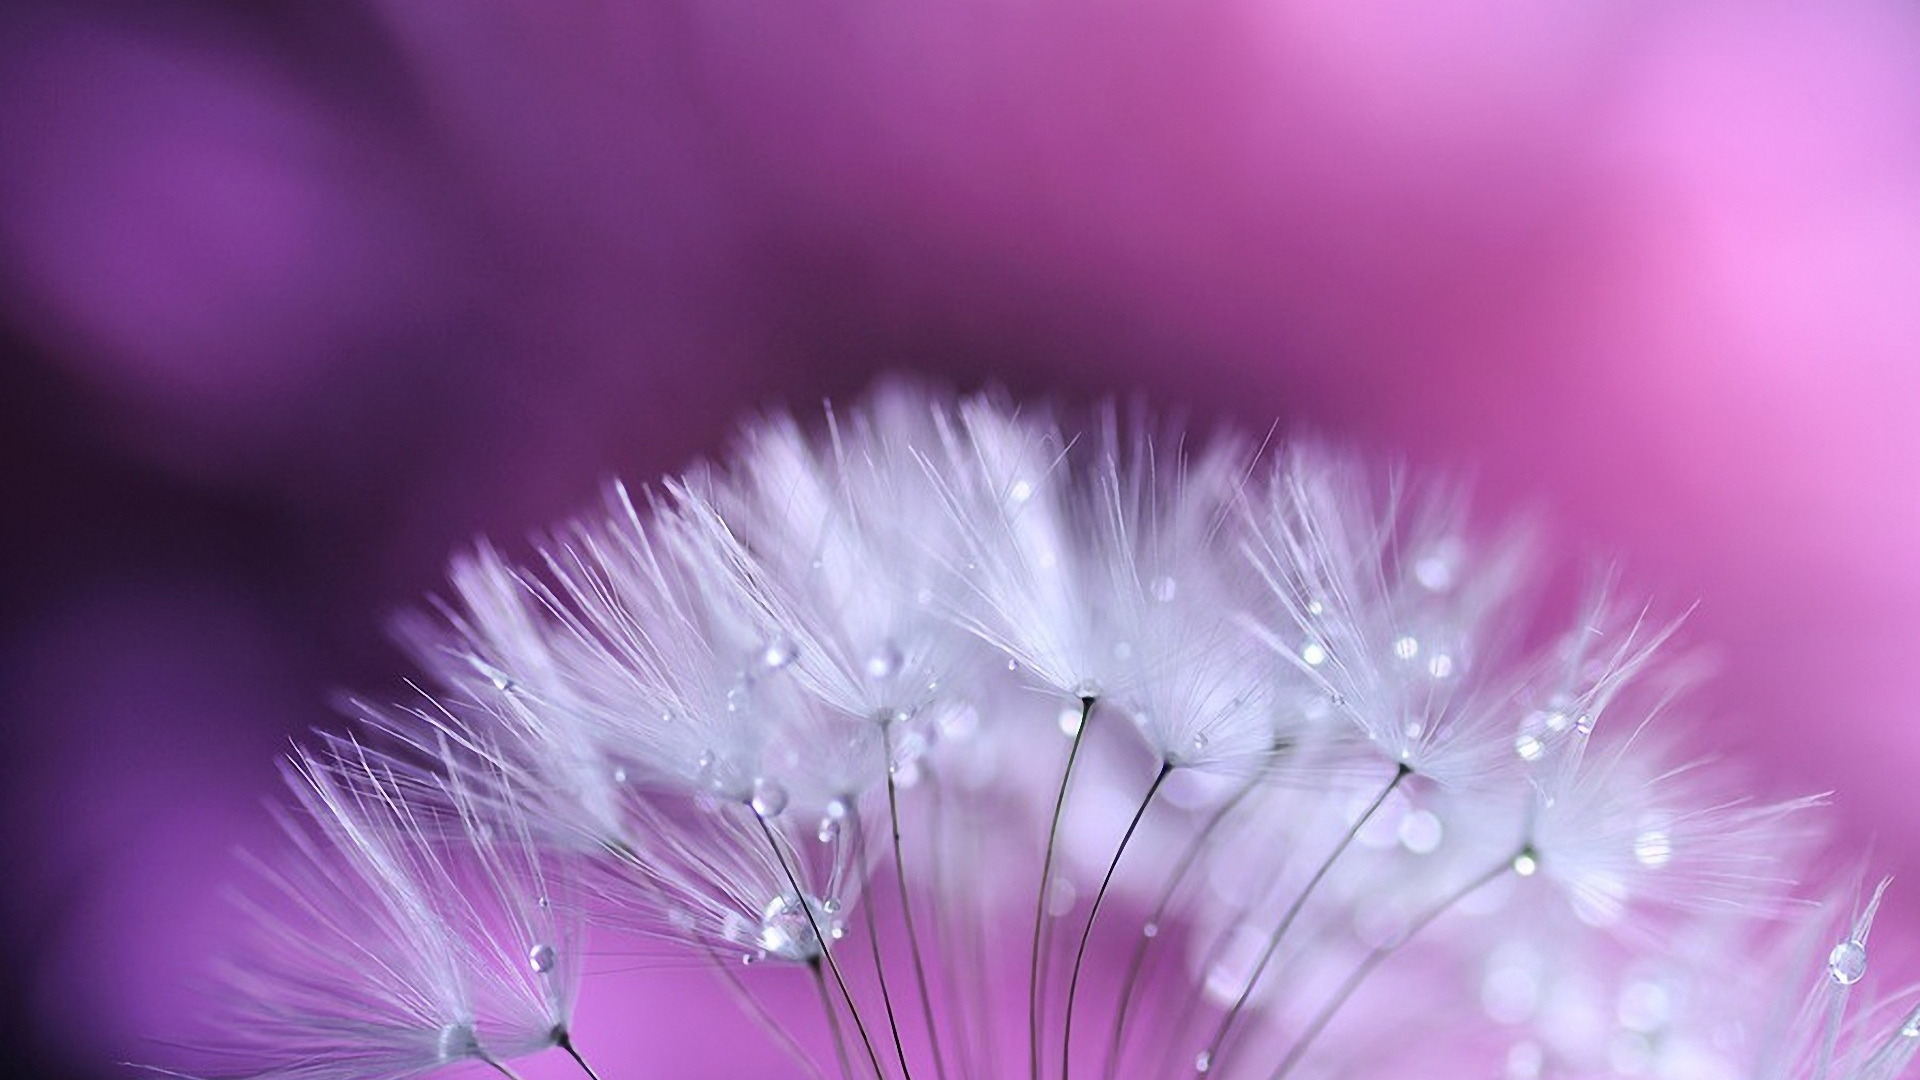 Dandelion wallpapers best wallpapers for High quality wallpapers